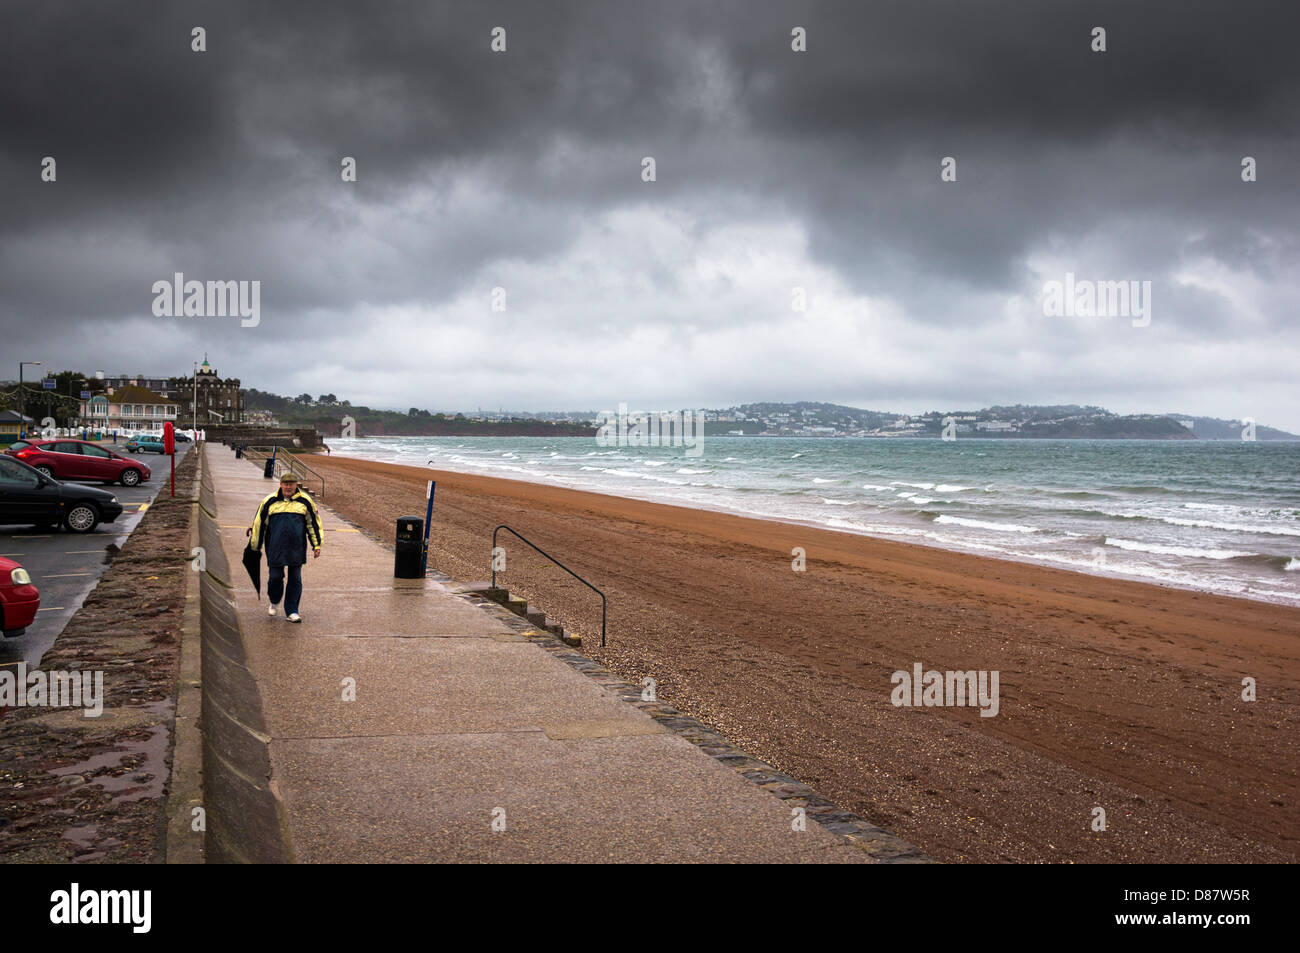 Man walking at the edge of Paignton beach in a rain storm on a rainy day, England, UK - Stock Image